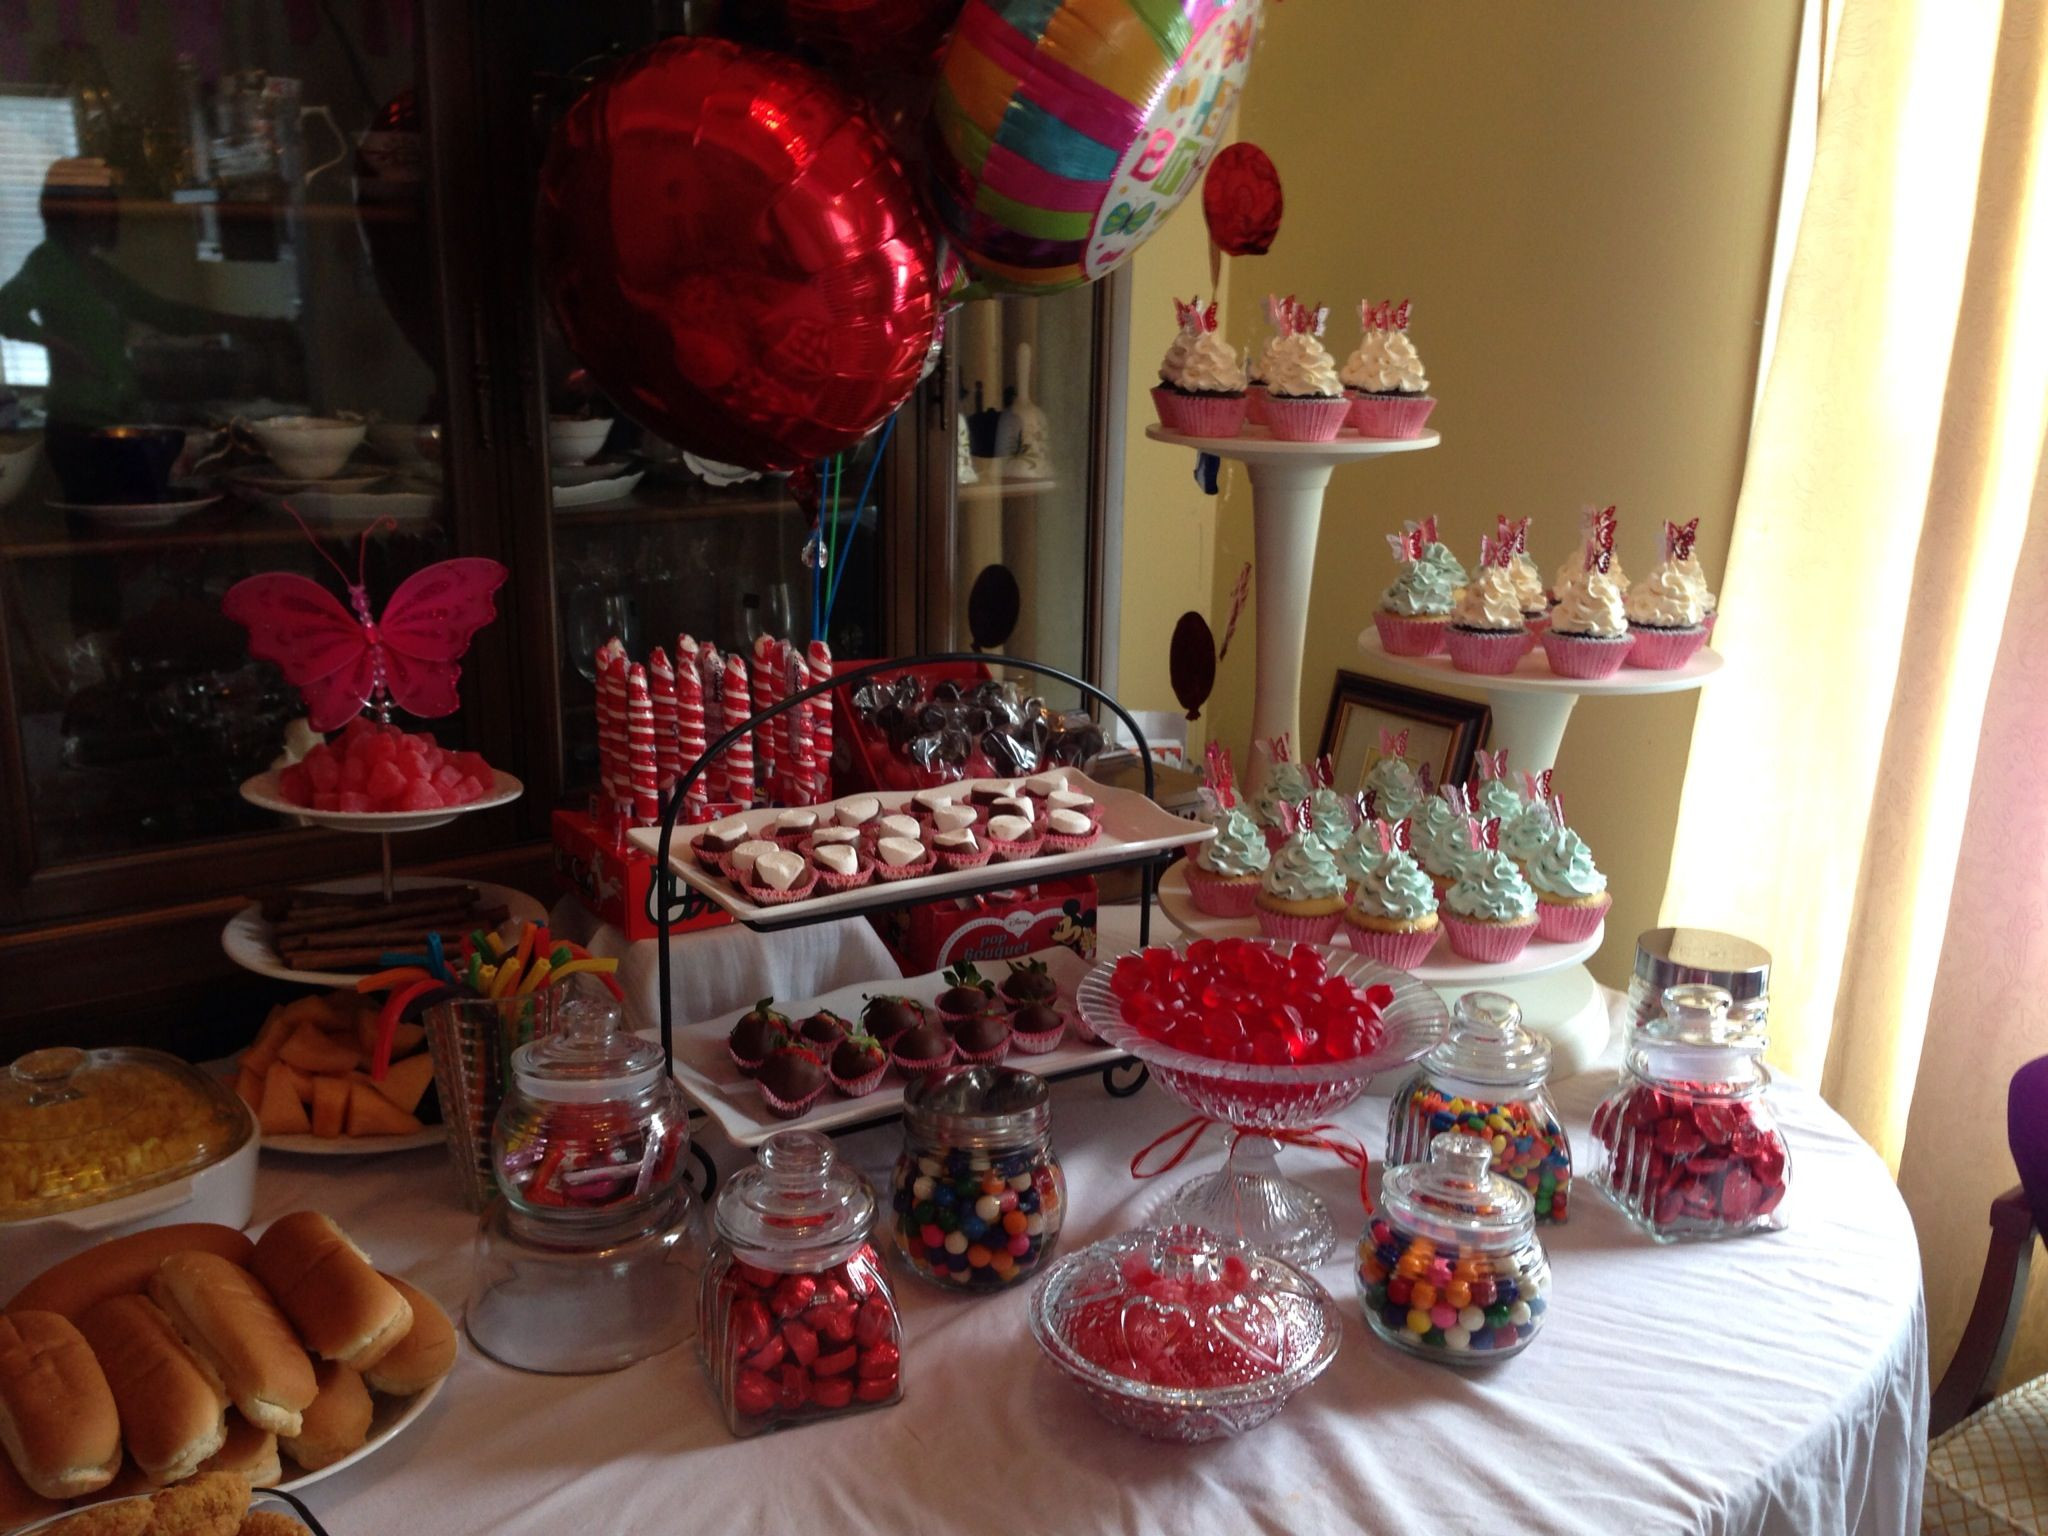 Best ideas about 13th Birthday Decorations . Save or Pin Bea s 13th Birthday party Party ideas Now.